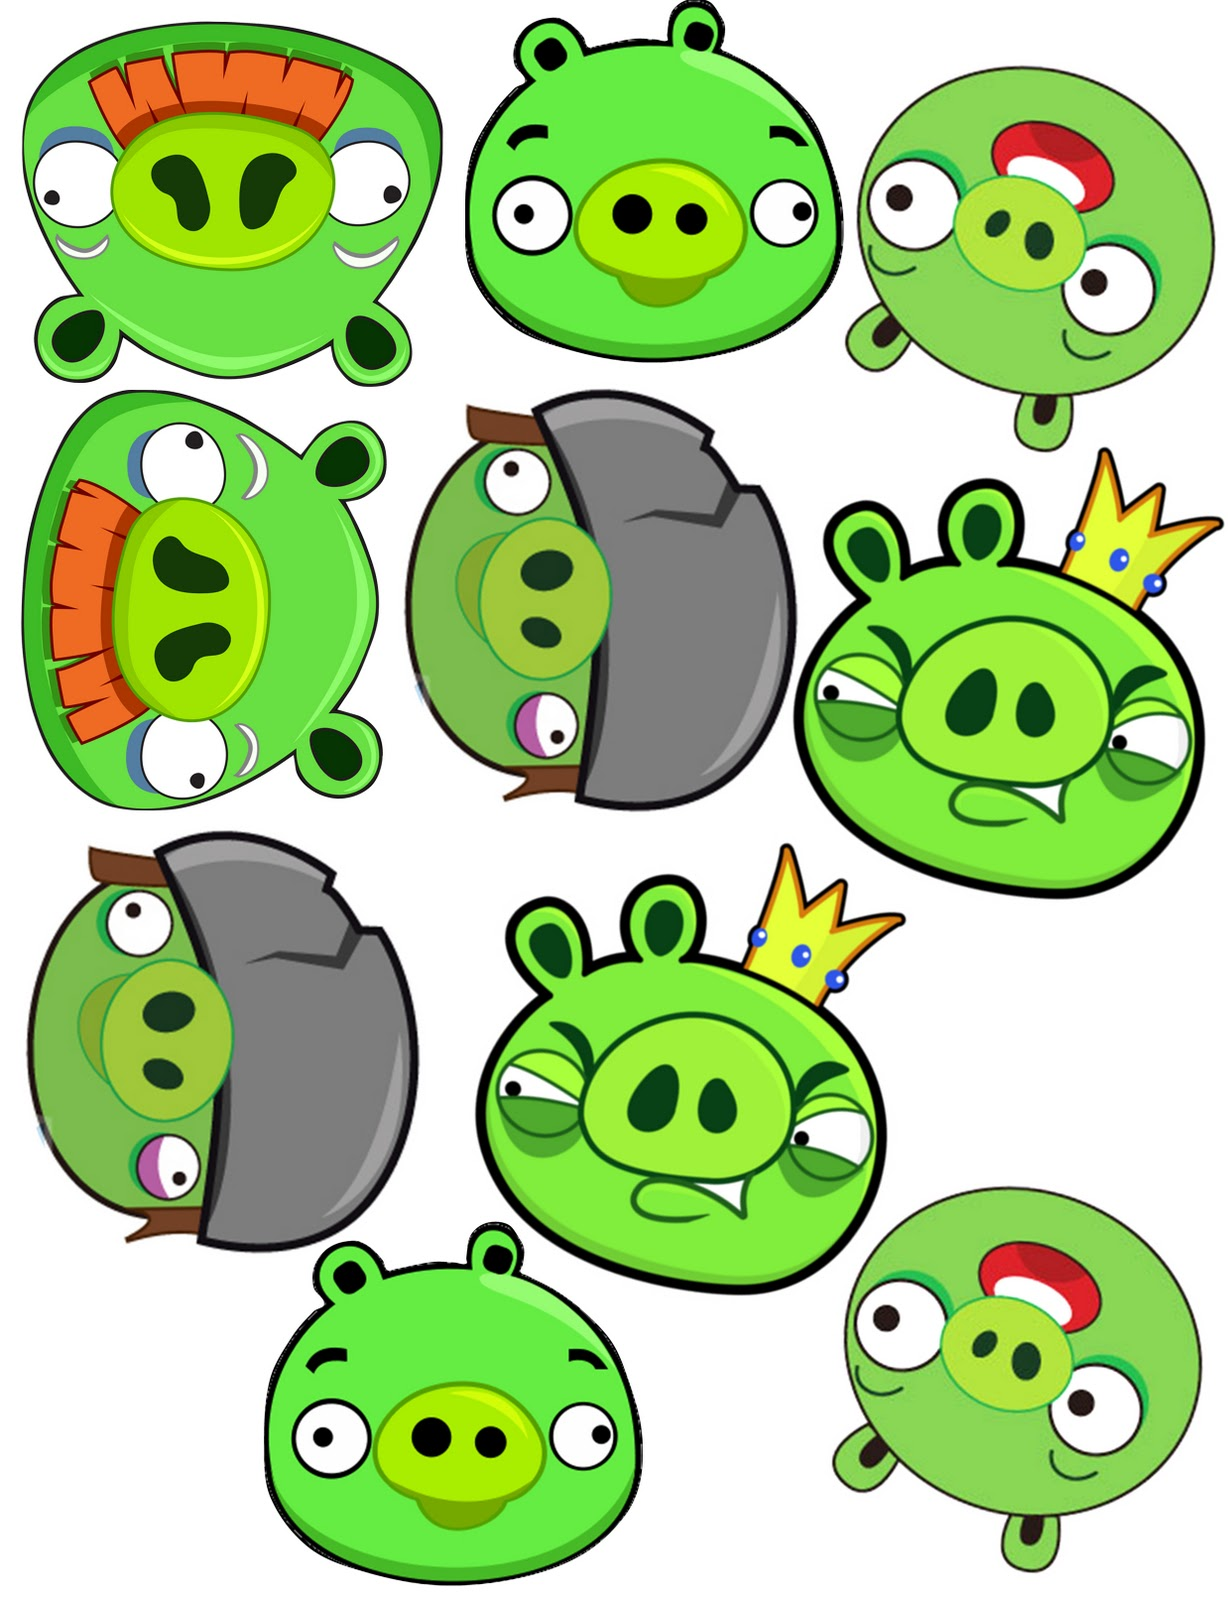 angry birds images to print - photo #9